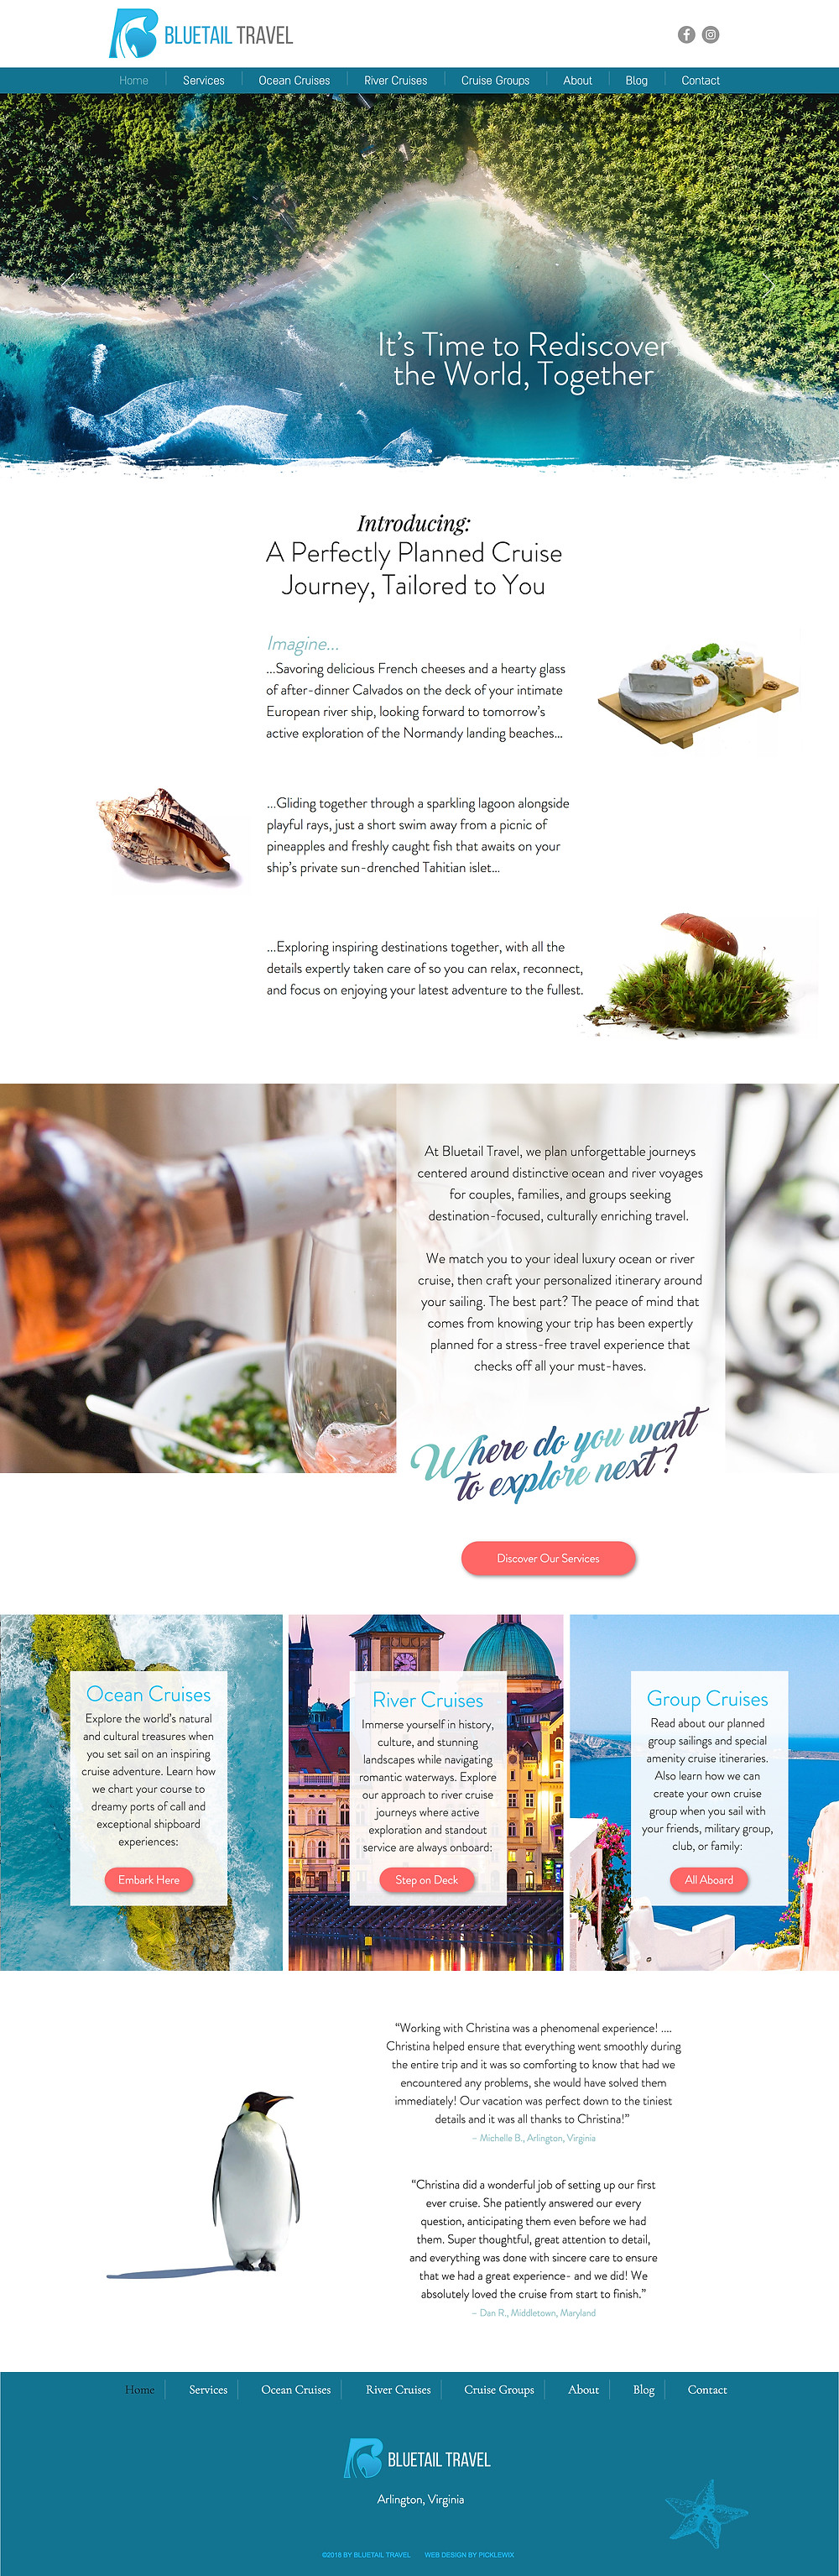 Wix Website Examples: Travel Agency Web Design